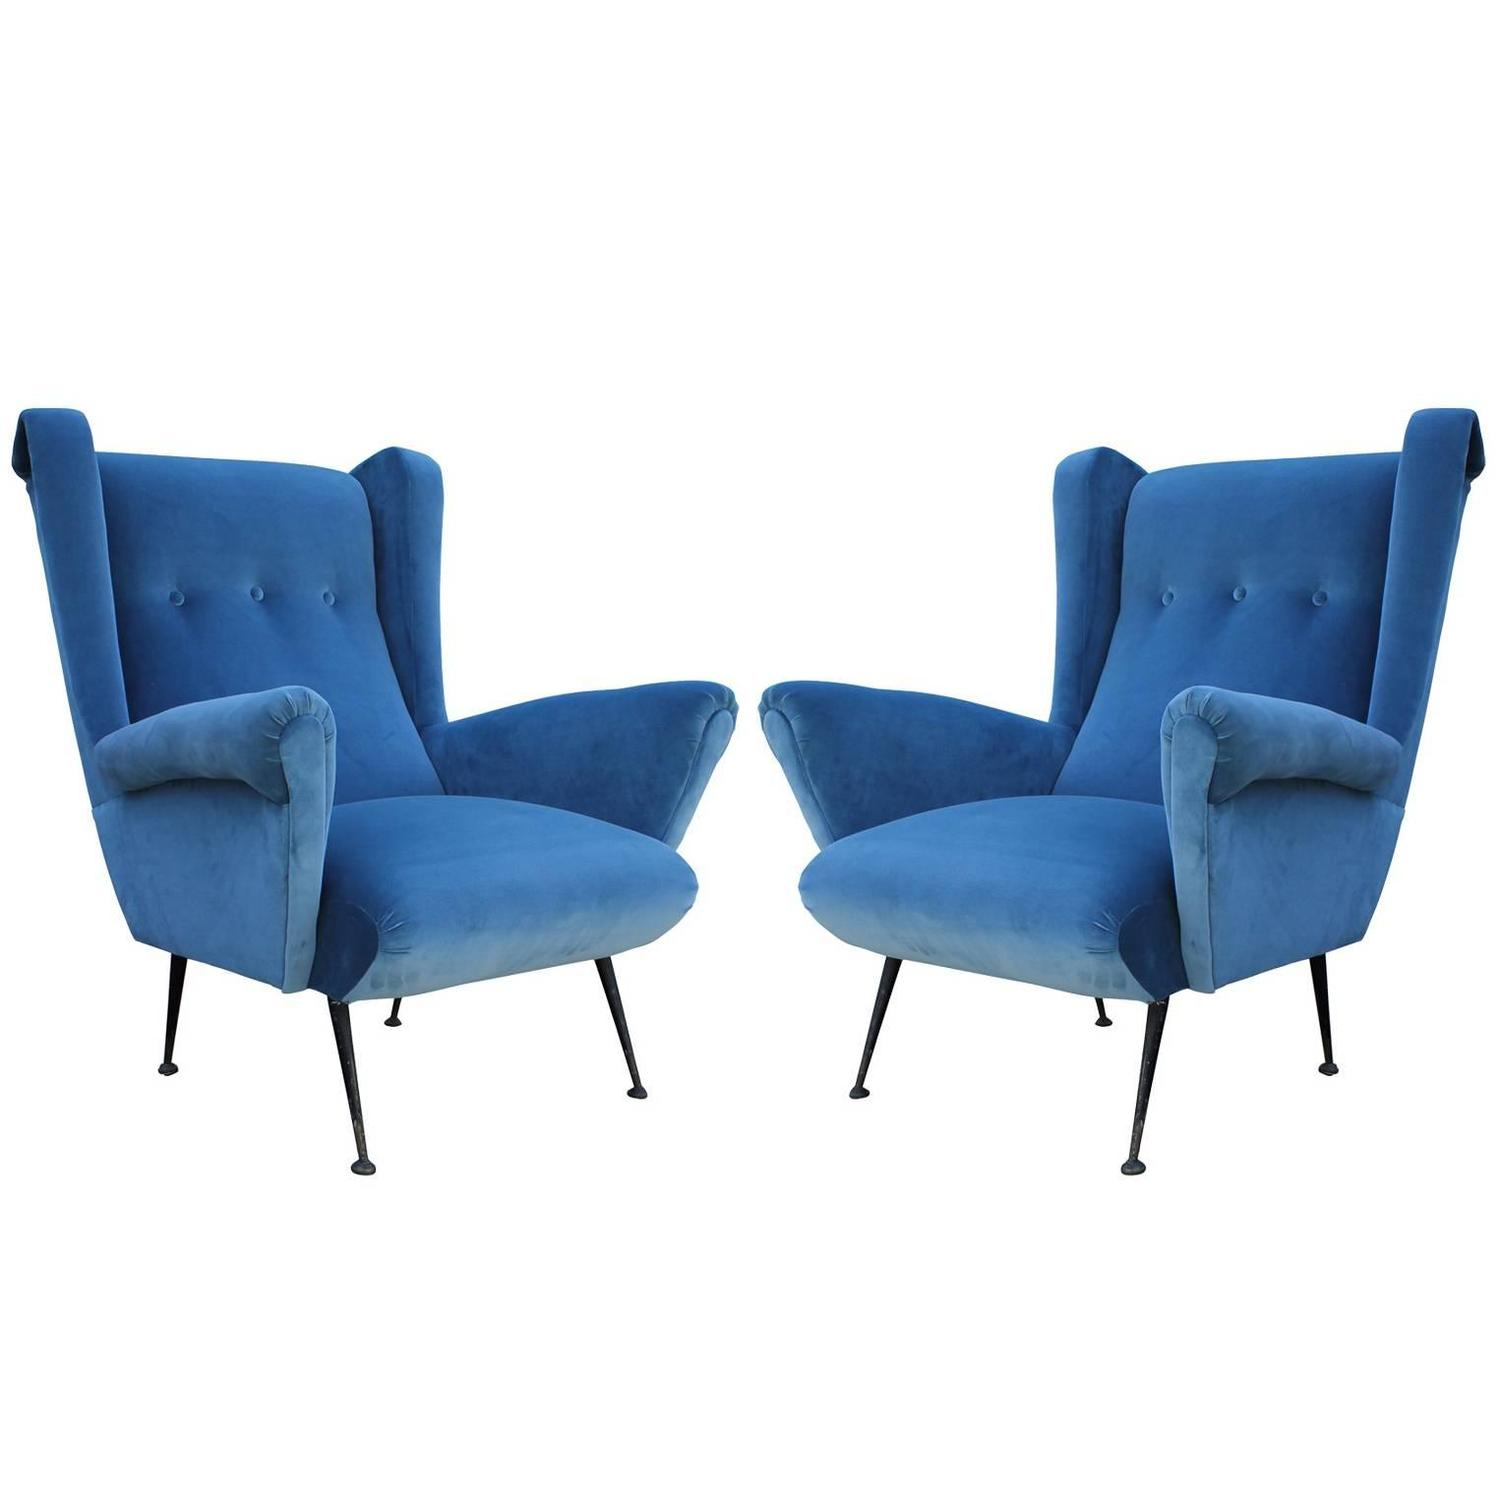 Pair of italian wingback lounge chairs in blue velvet at 1stdibs